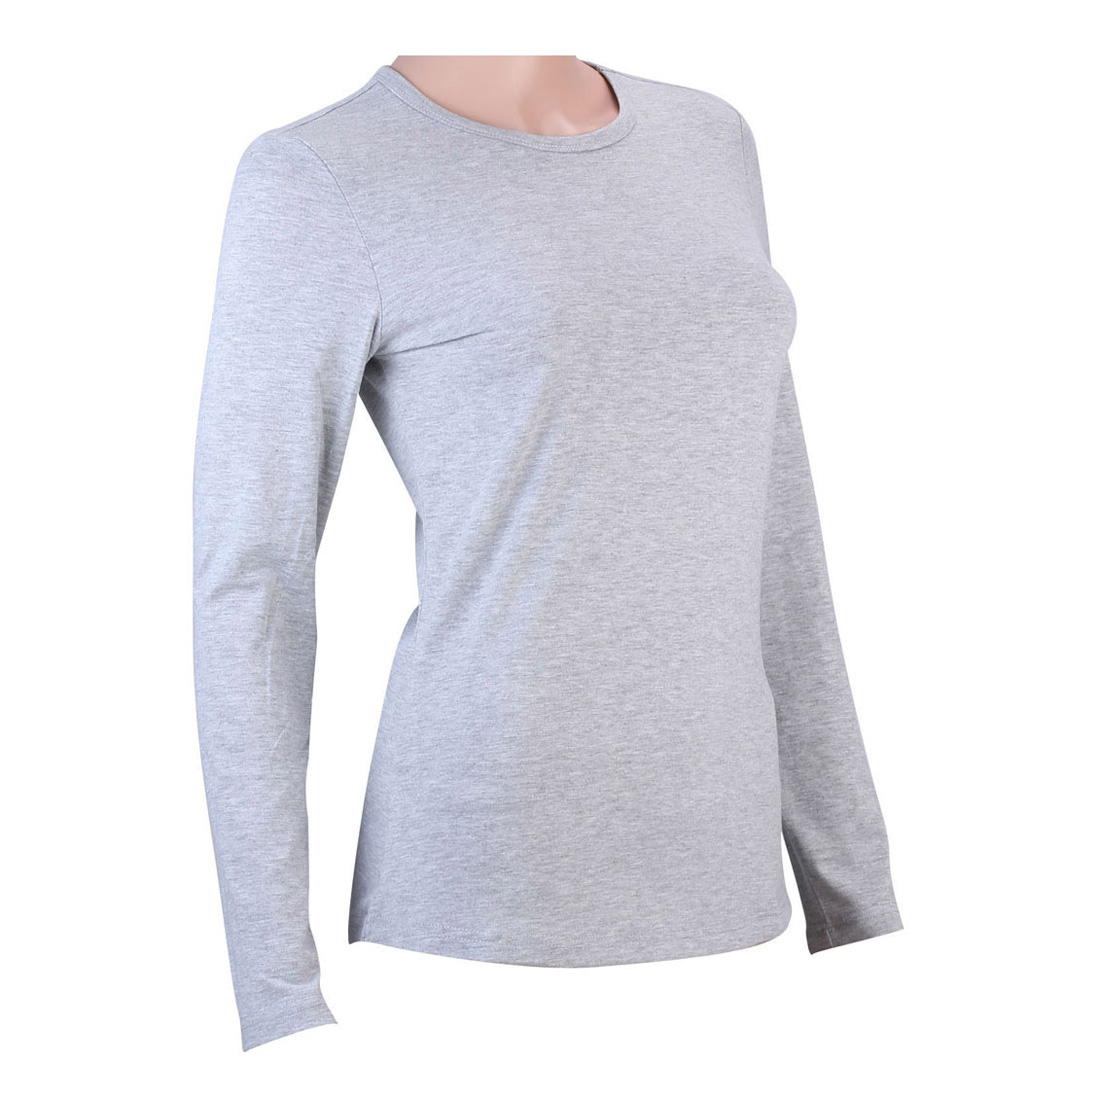 Comfy Clothing made with Organic Cotton | PactEco-Friendly Packaging · Fair Trade Certified™ · Made With Organic Cotton  · Latex-FreeStyles: Basics, Tees, Hoodies, Sweat Pants, Underwear, Socks.